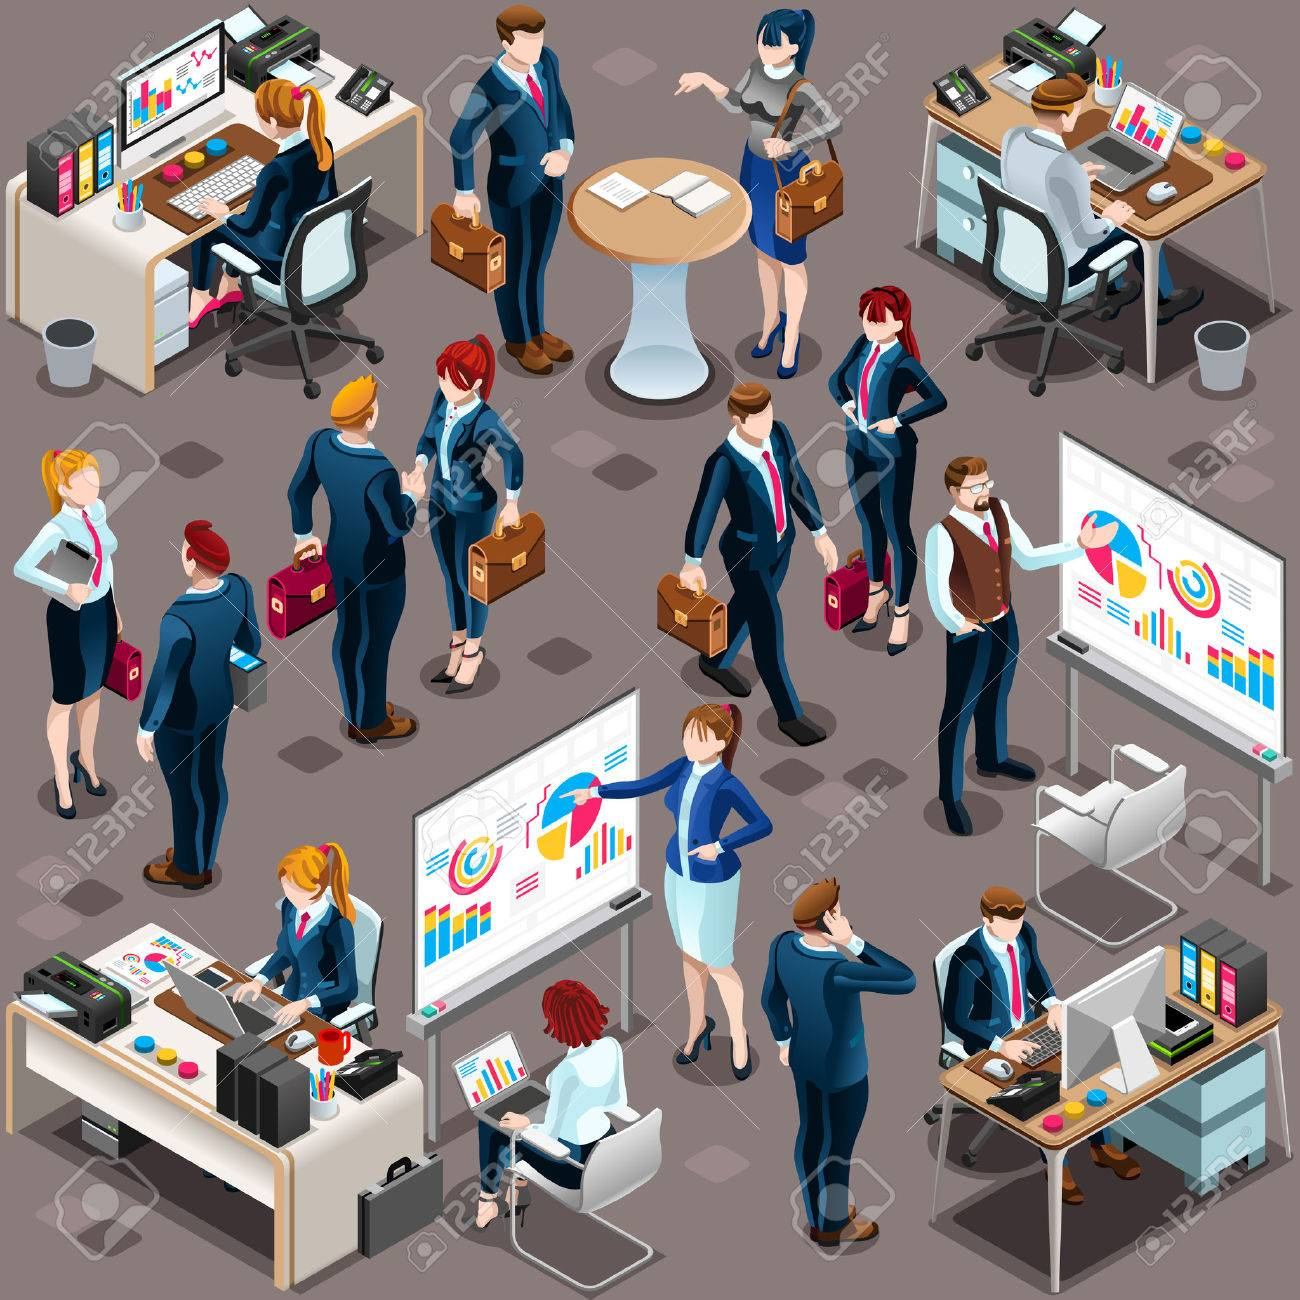 Isometric people isolated meeting staff infographic. 3D Isometric boss person icon set. Creative design vector illustration collection Standard-Bild - 73210521